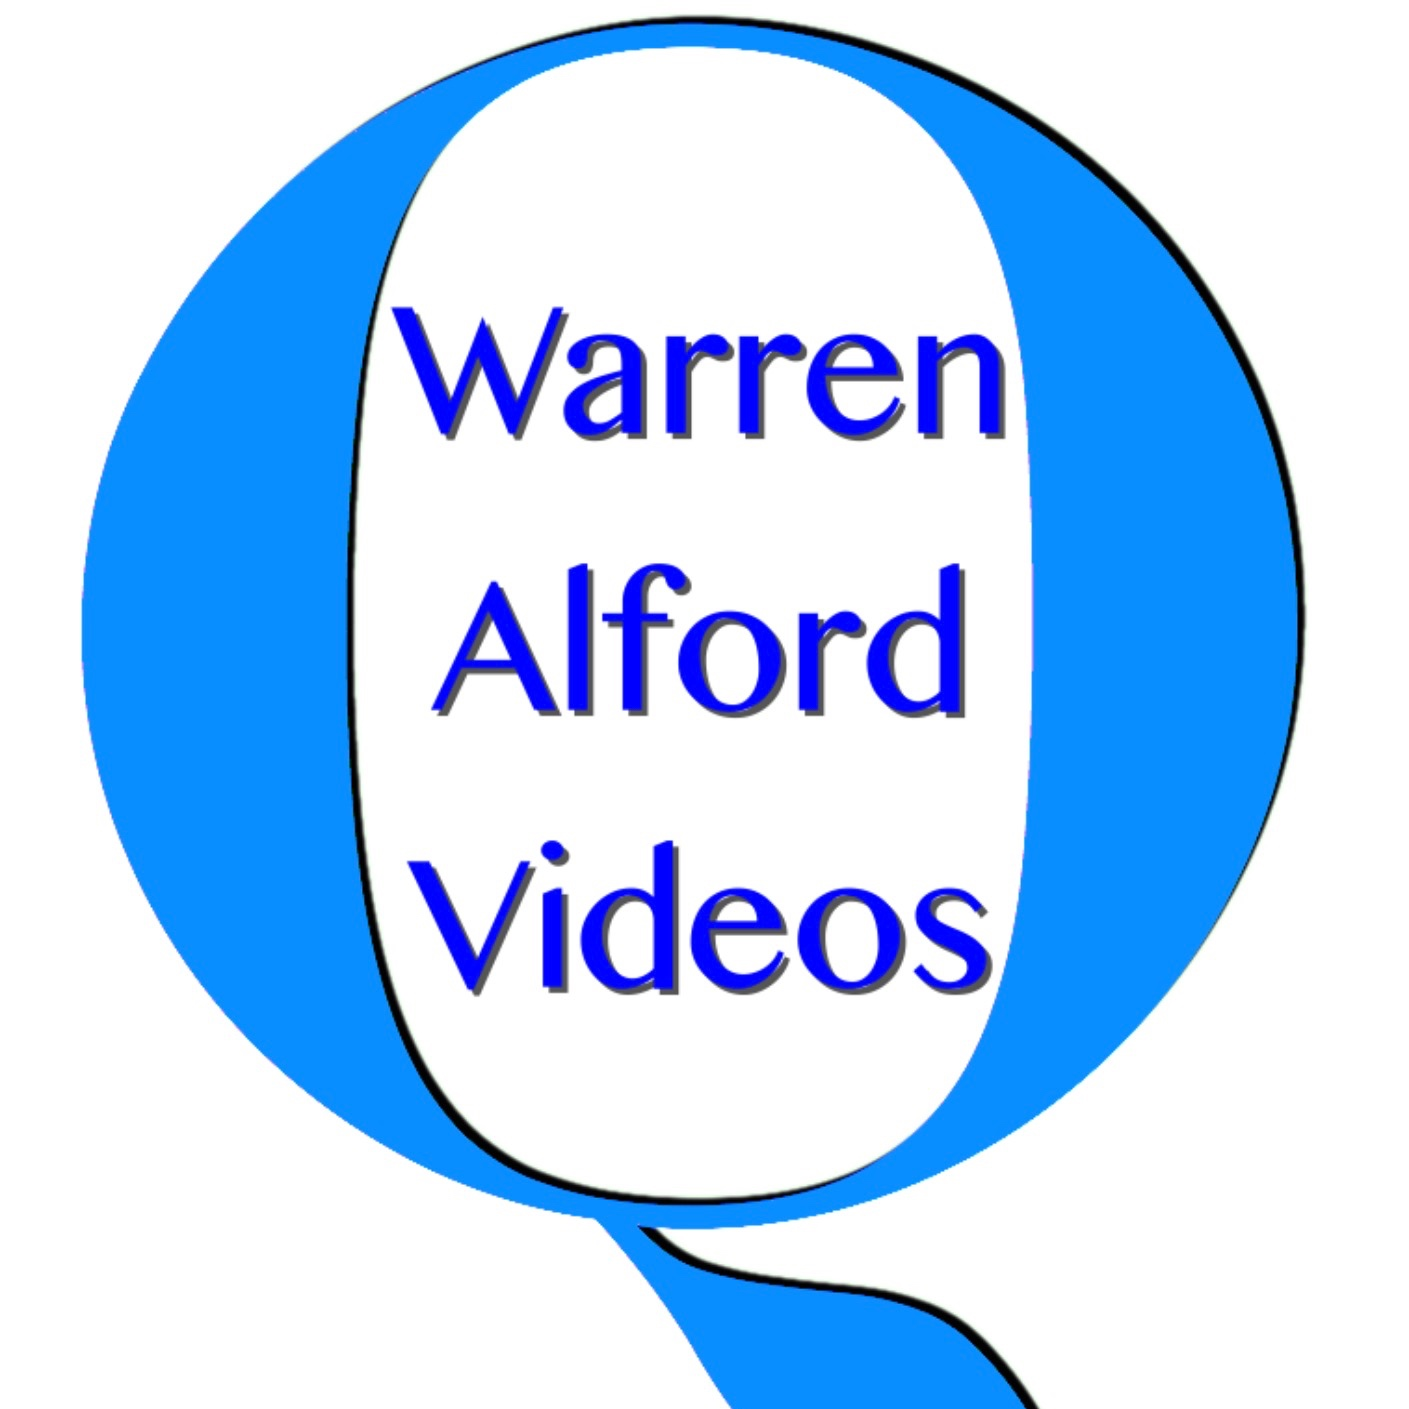 Cybersecurity, Quality Management, and Pen Testing Training Videos by Warren Alford